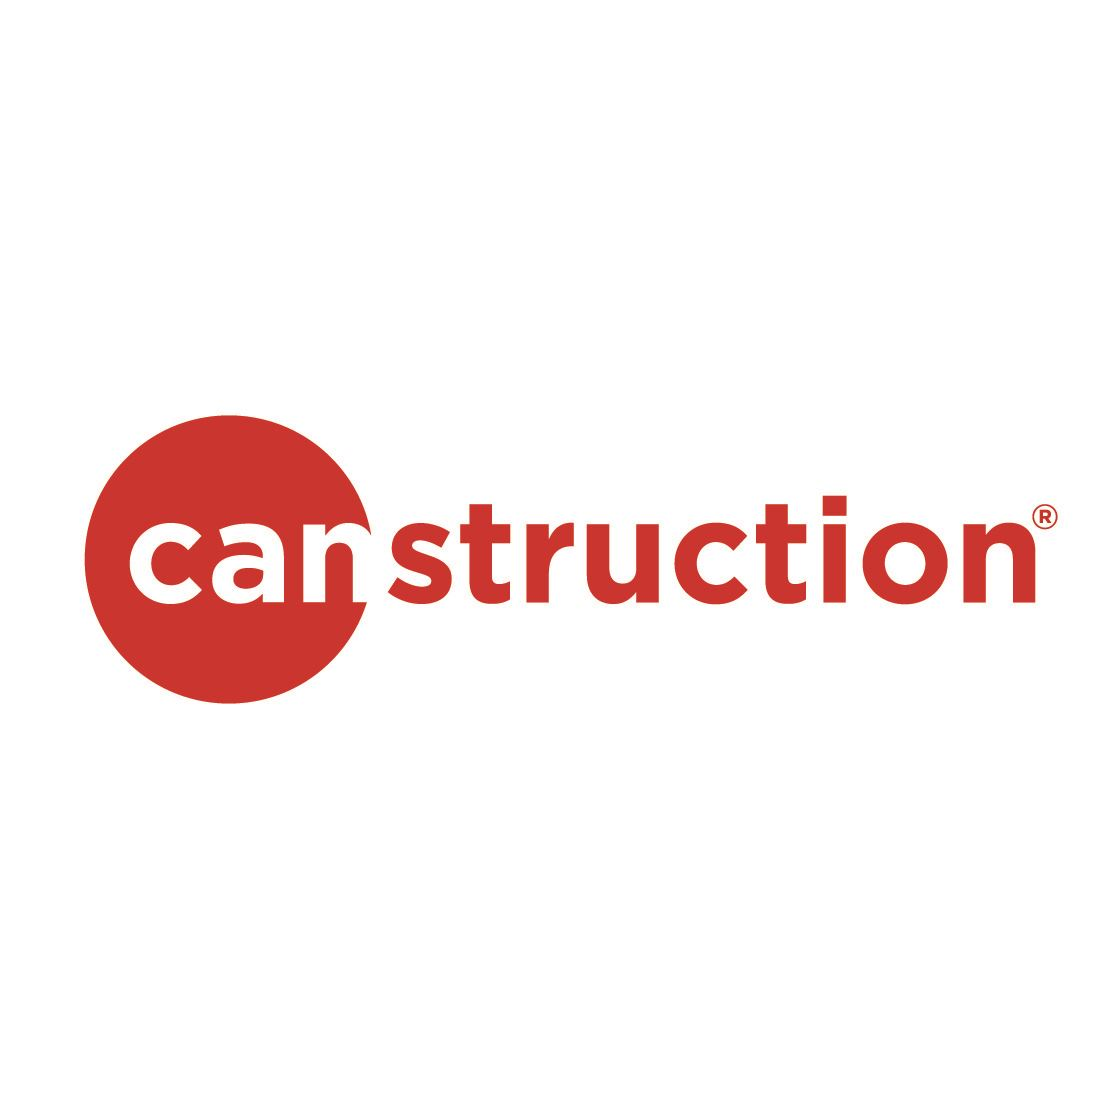 Canstruction Red Logo Square JPEG